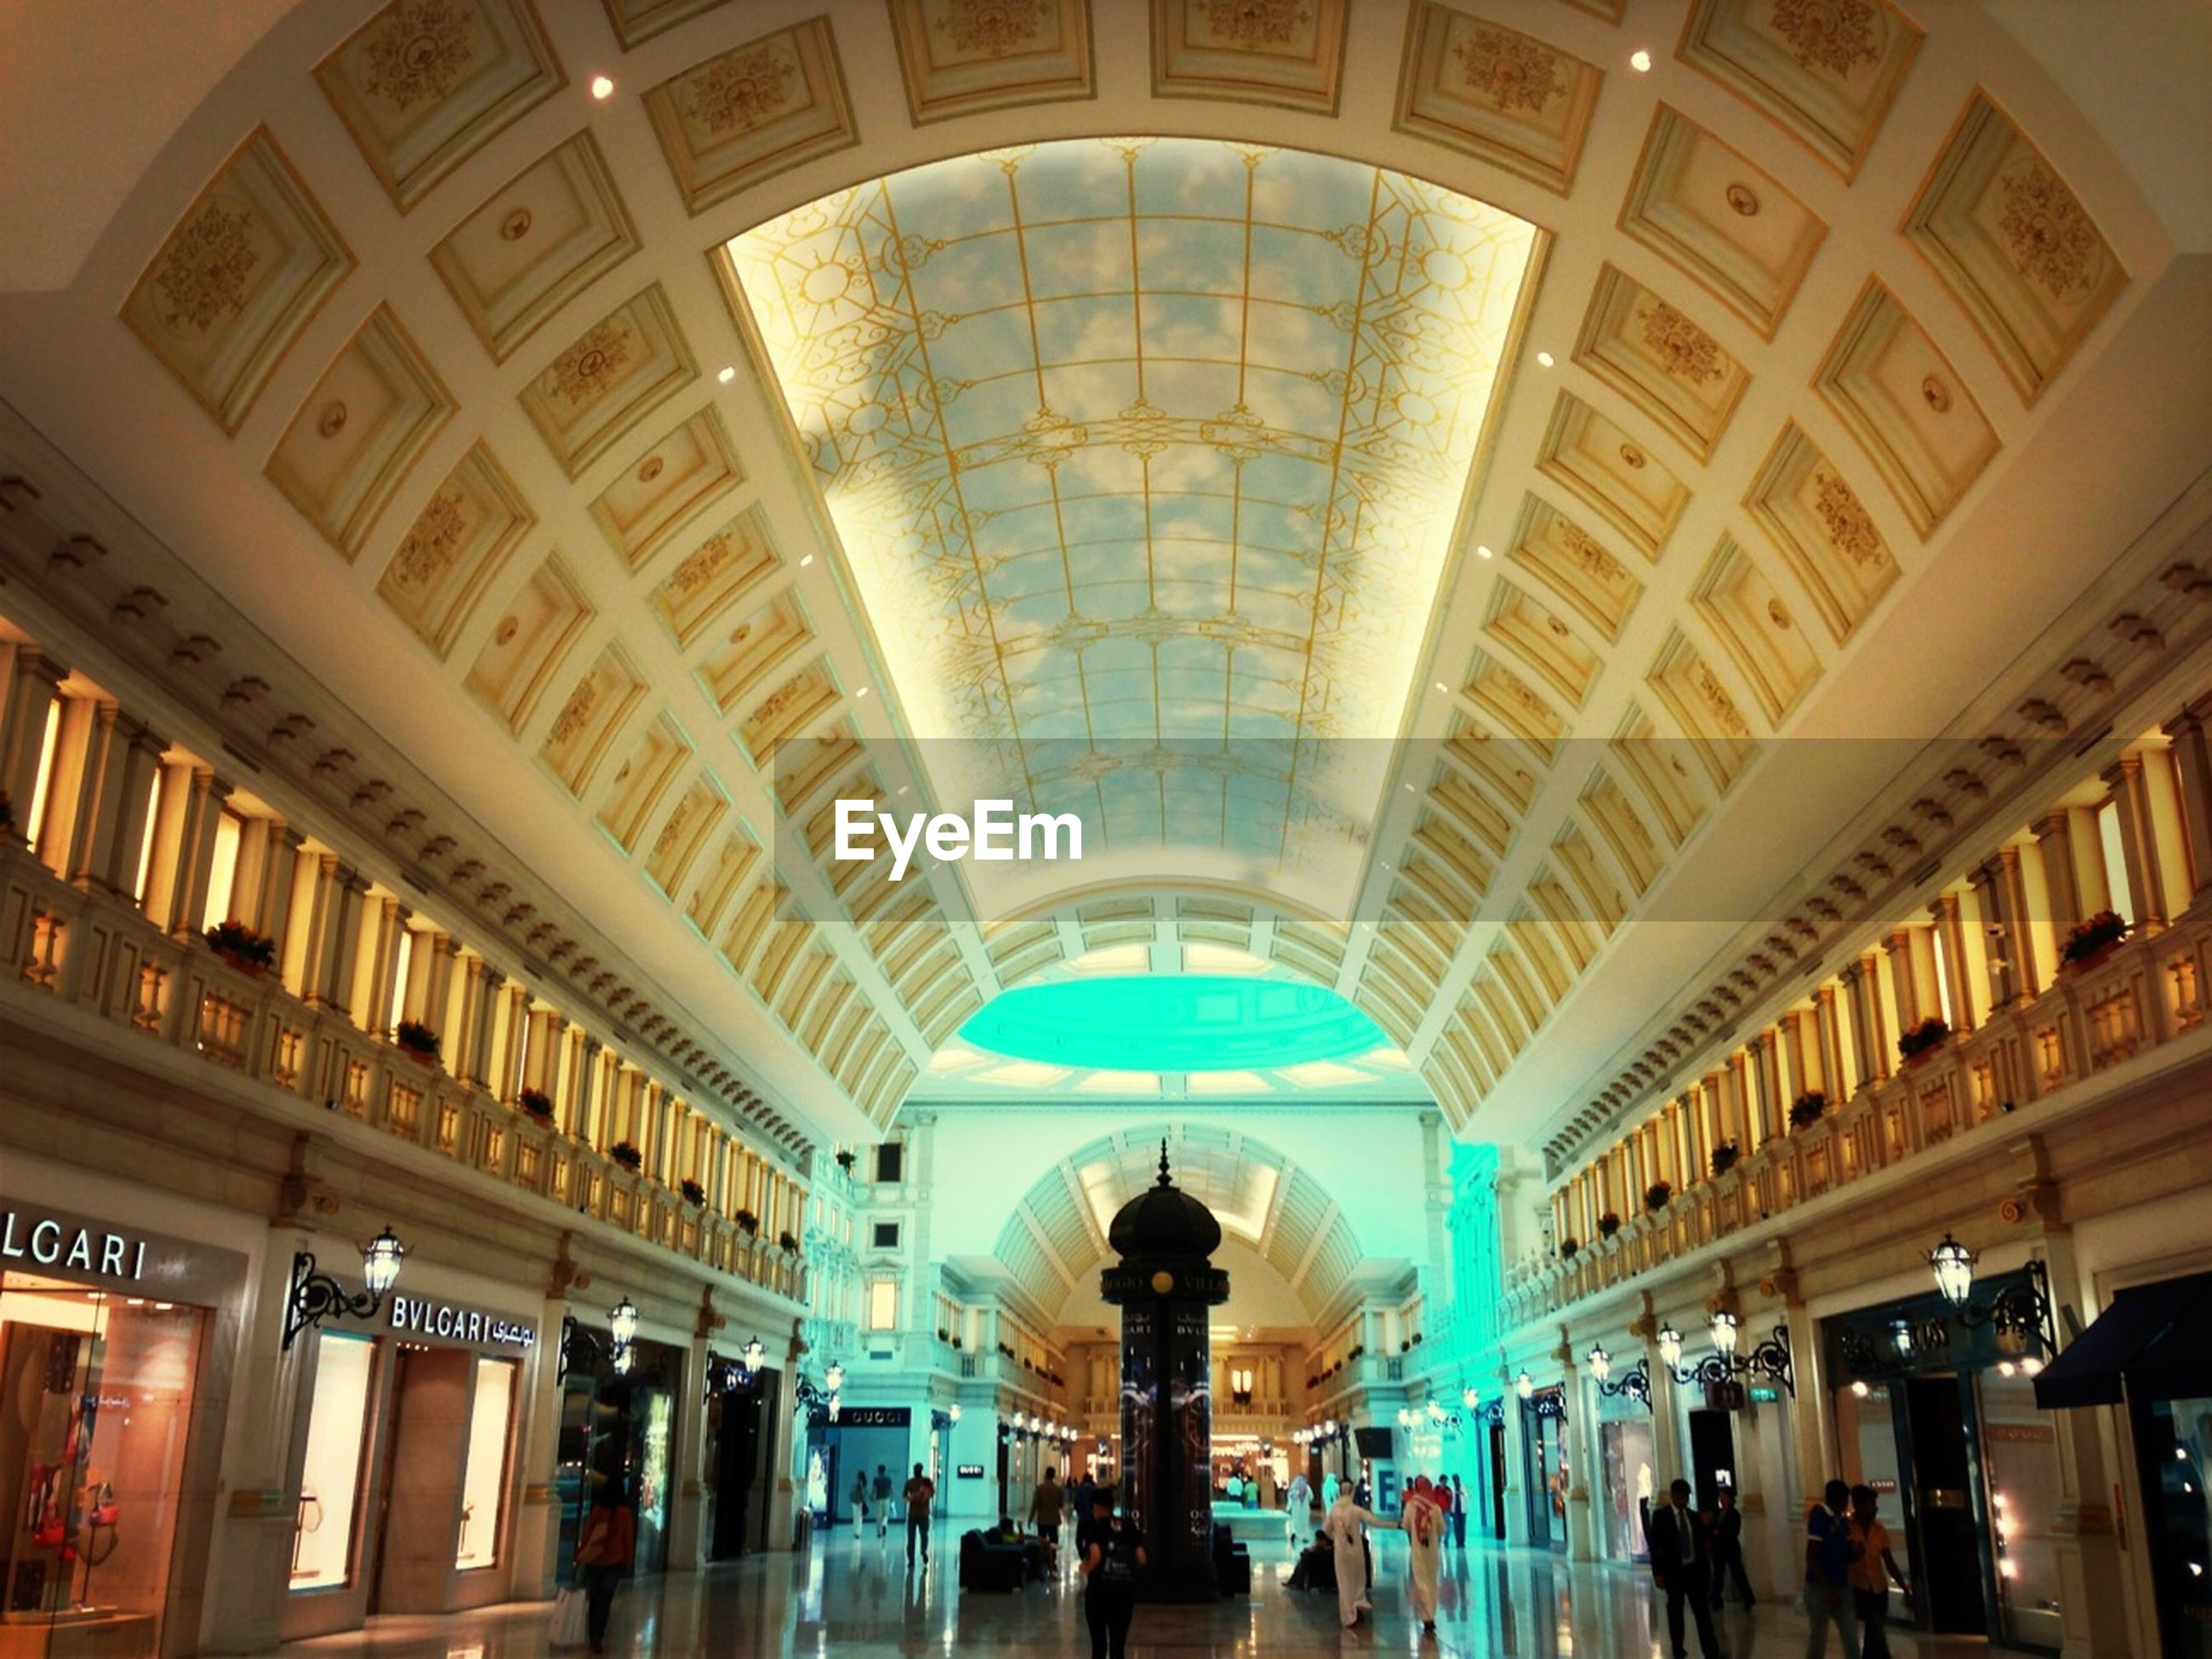 indoors, ceiling, architecture, built structure, lifestyles, large group of people, men, person, illuminated, leisure activity, arch, lighting equipment, low angle view, interior, tourist, shopping mall, travel, architectural column, tourism